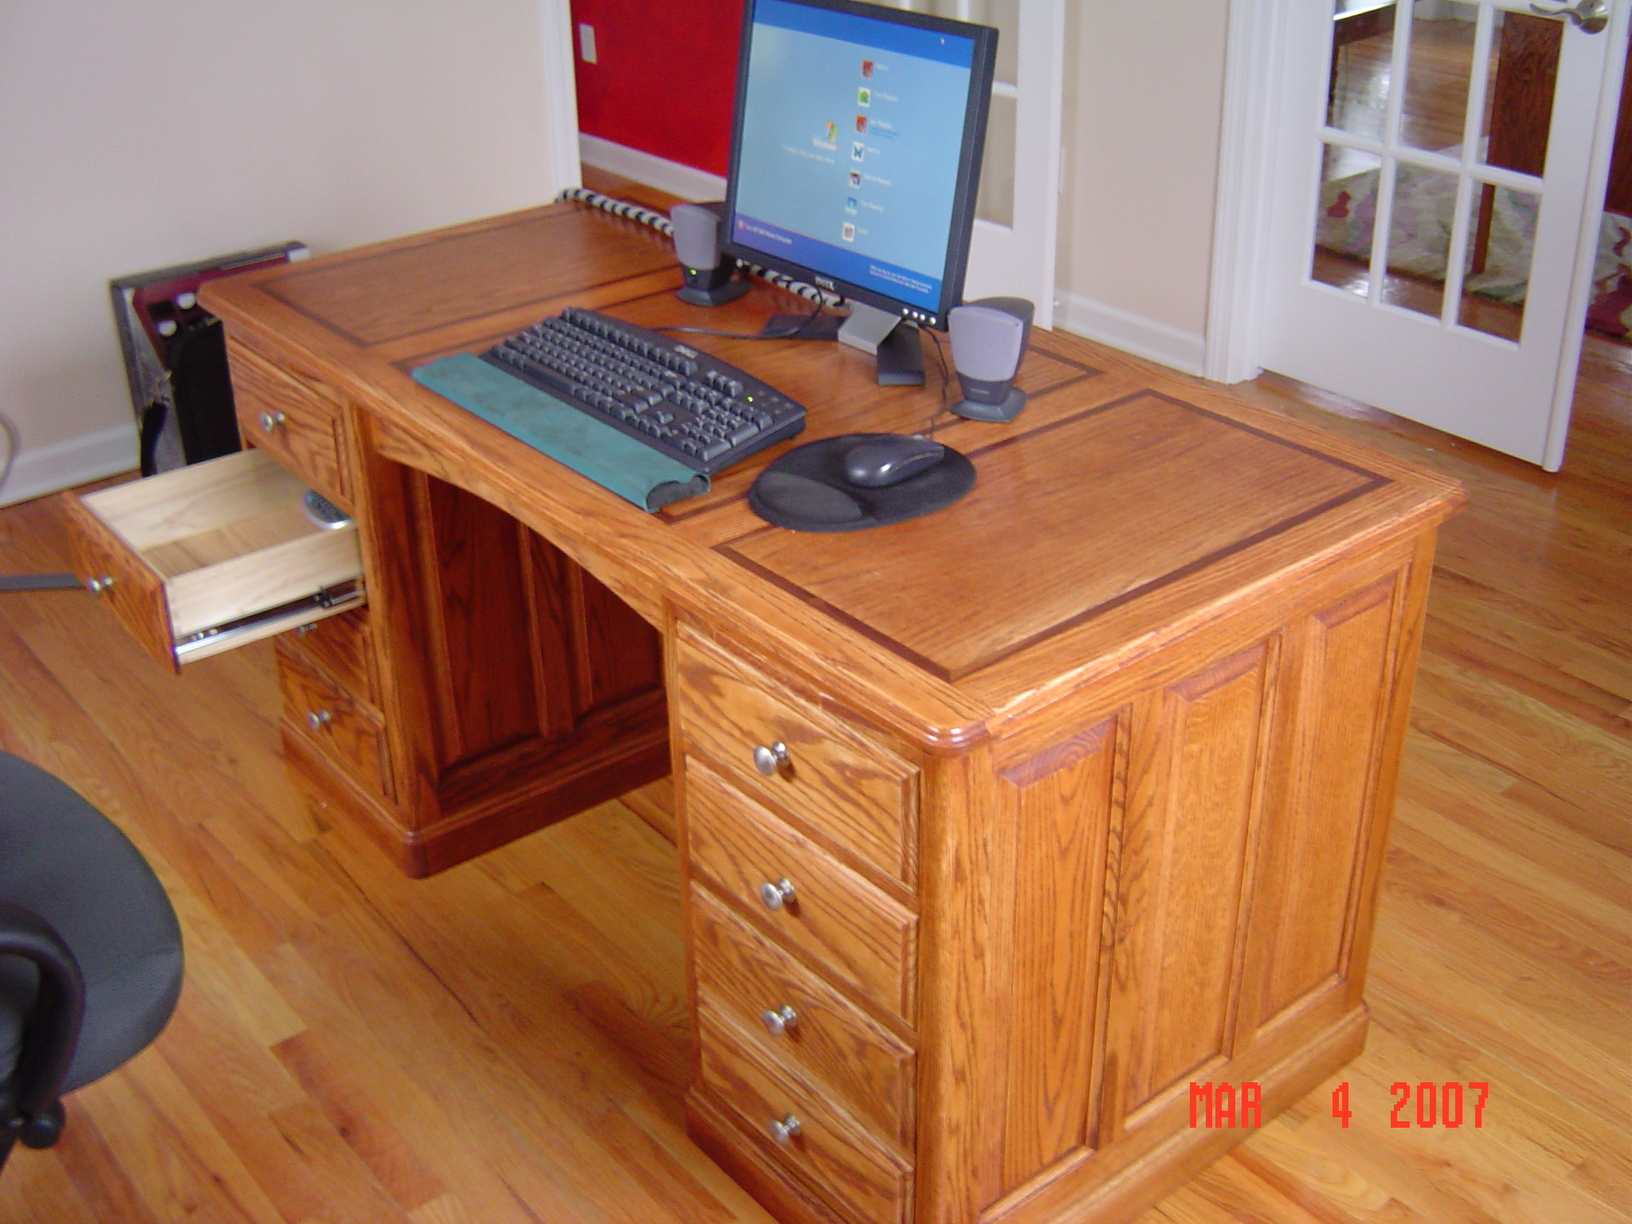 ... Desk Plans Woodworking Free Download cool diy projects for teenagers